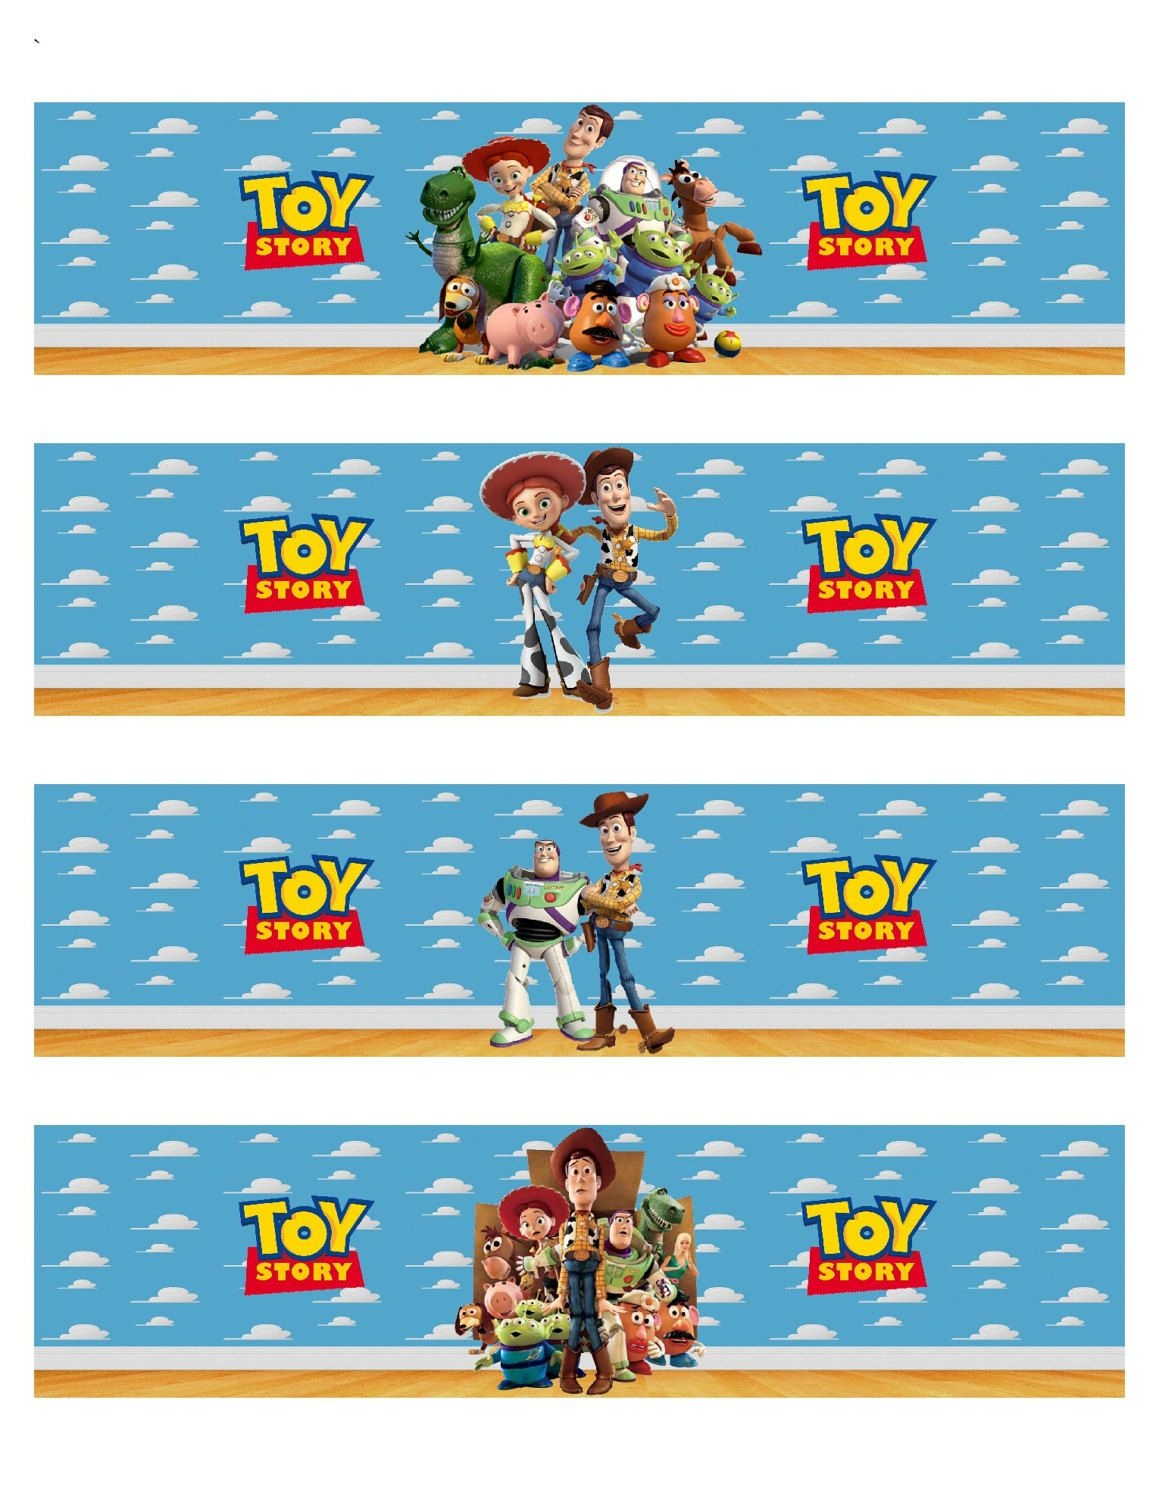 Toy Story Inspired Water Bottle Labelspinkyandbluesy On Etsy - Free Printable Toy Story Water Bottle Labels